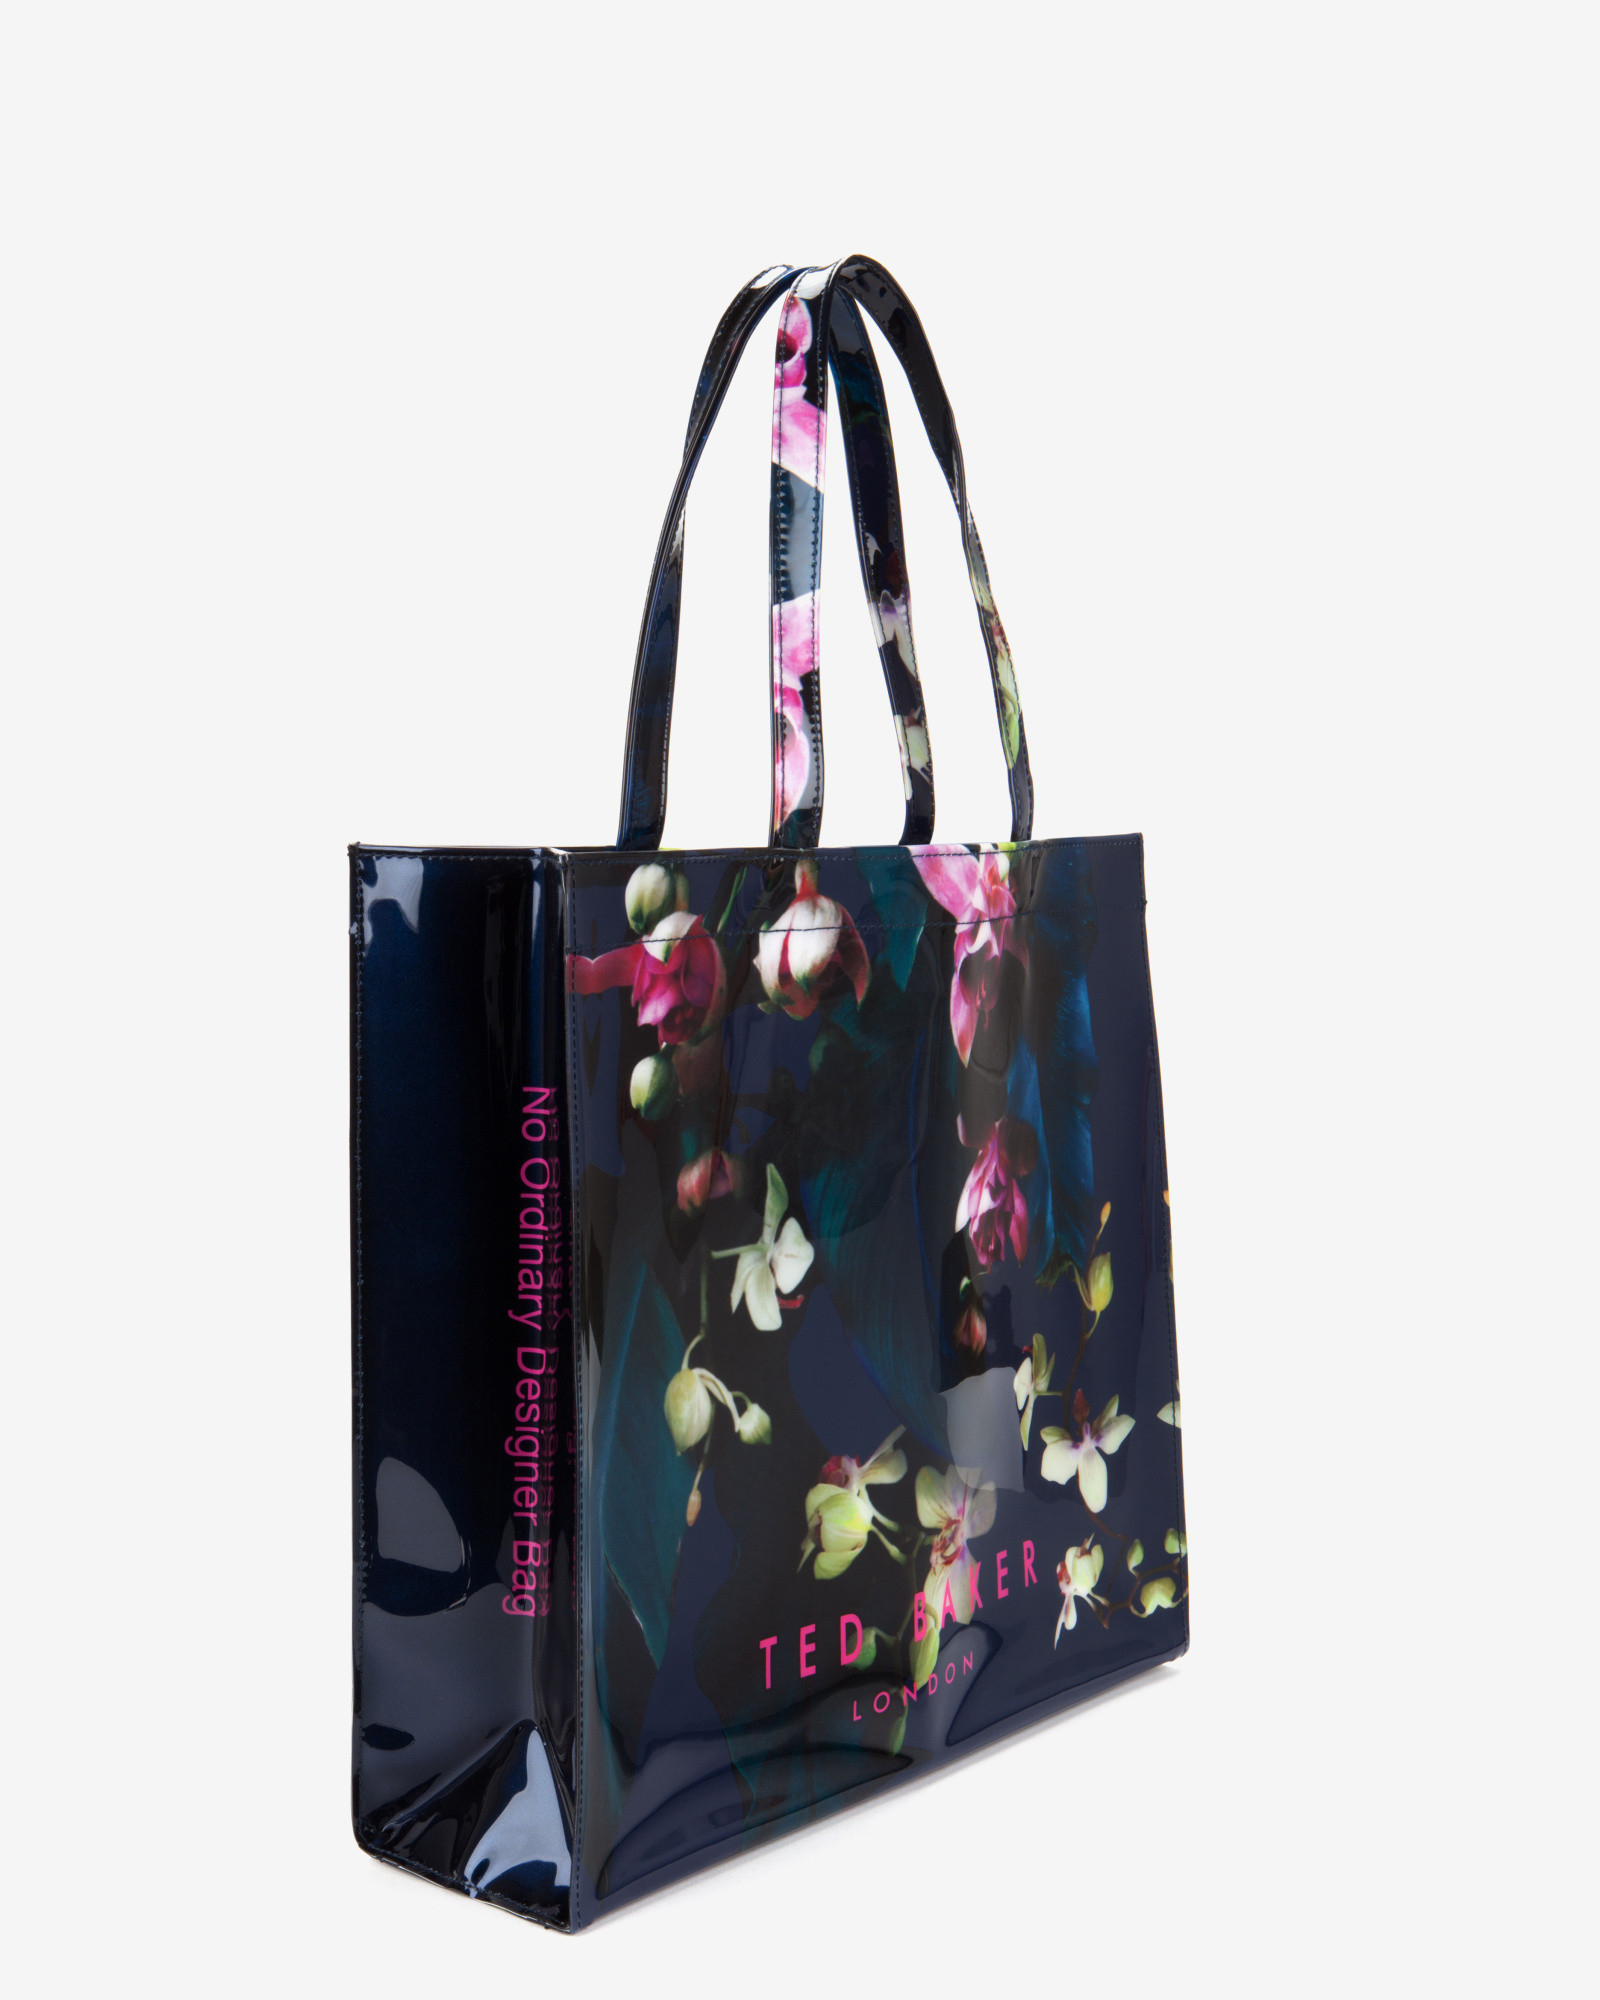 Ted Baker Large Fuchsia Floral Shopper Bag In Blue | Lyst